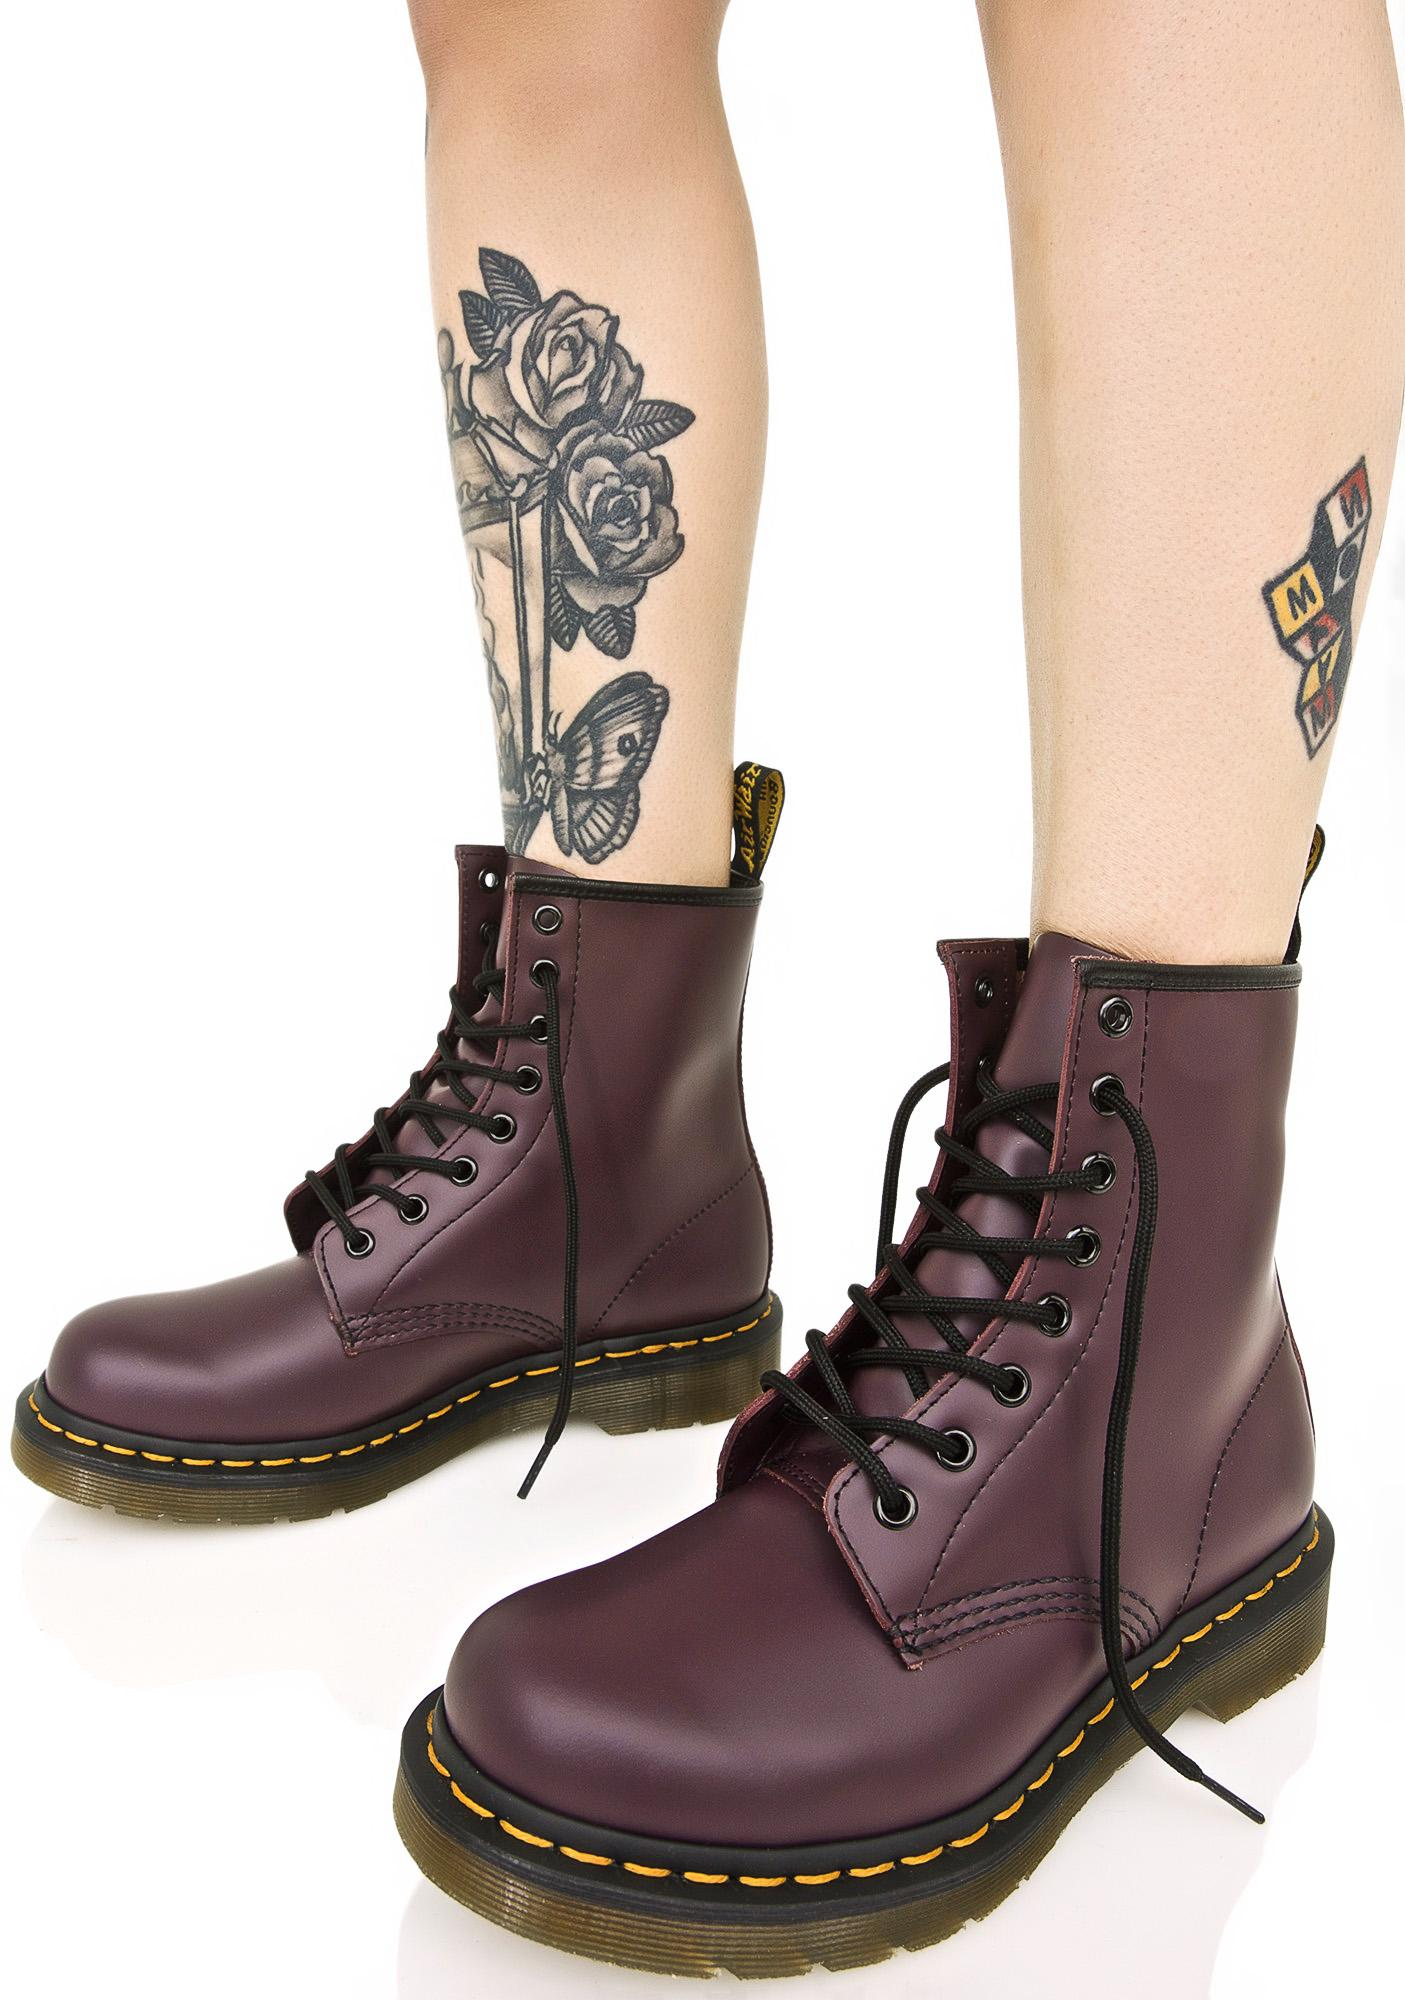 Dr. Martens Royal Purple 1460 8 Eye Boots  be4771a1c110